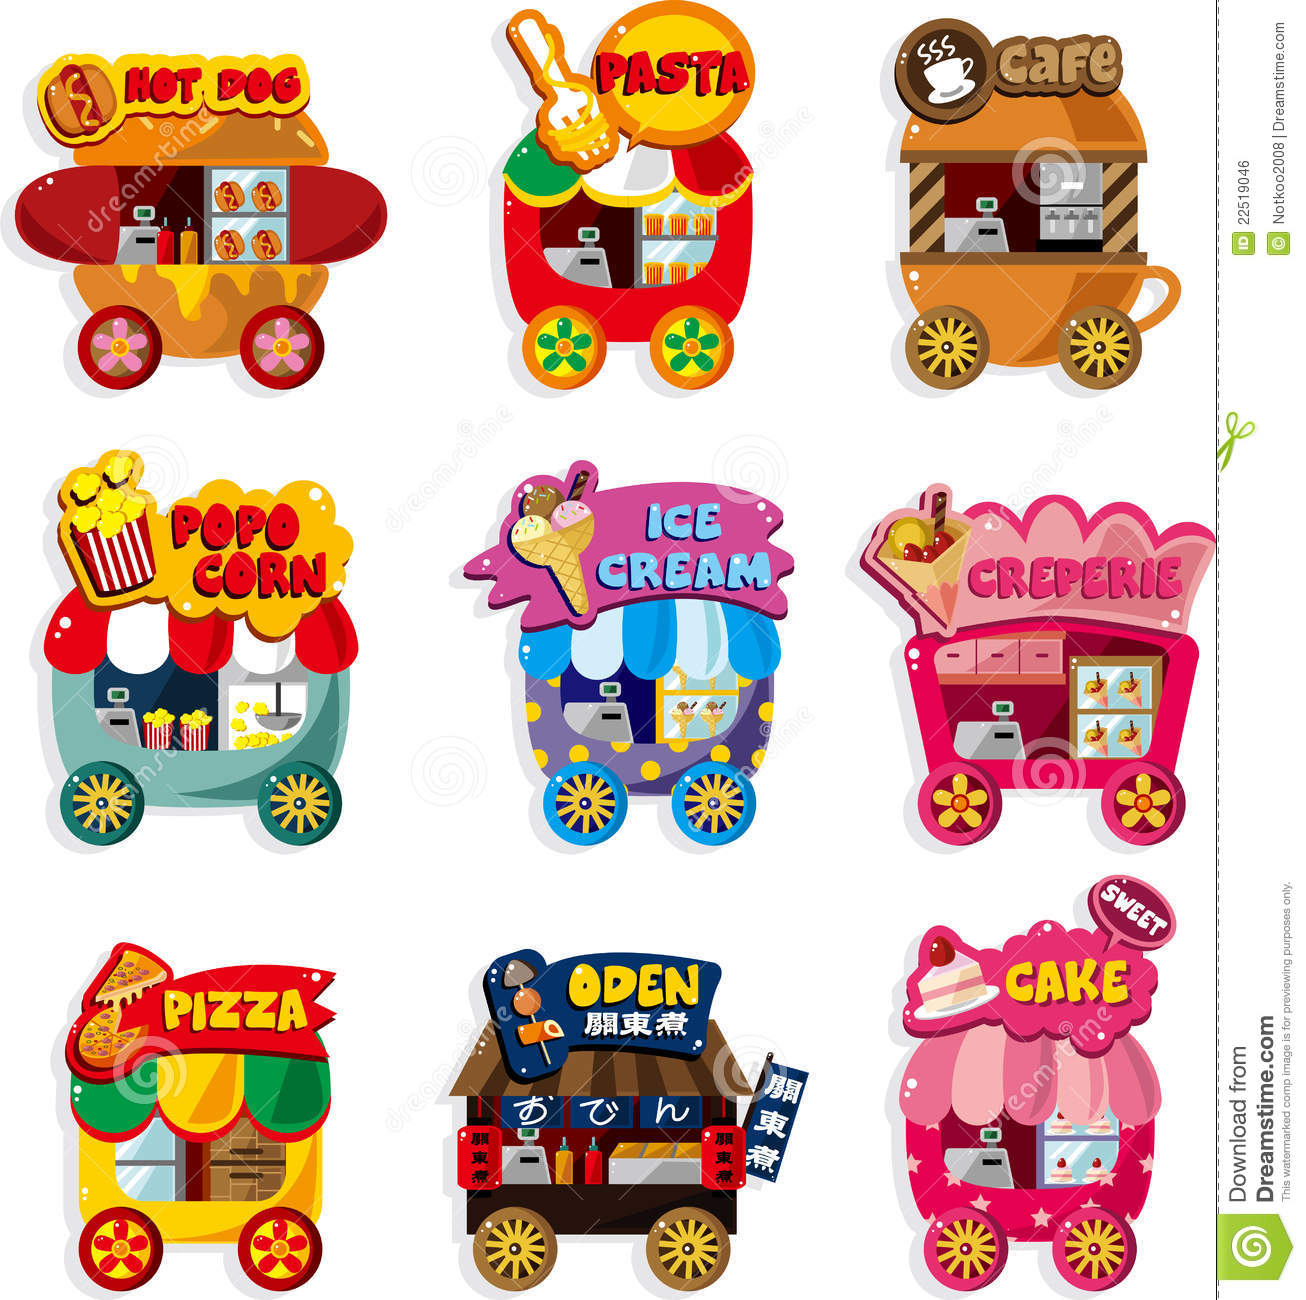 Cartoon Market Store Car Icon Collection Royalty Free